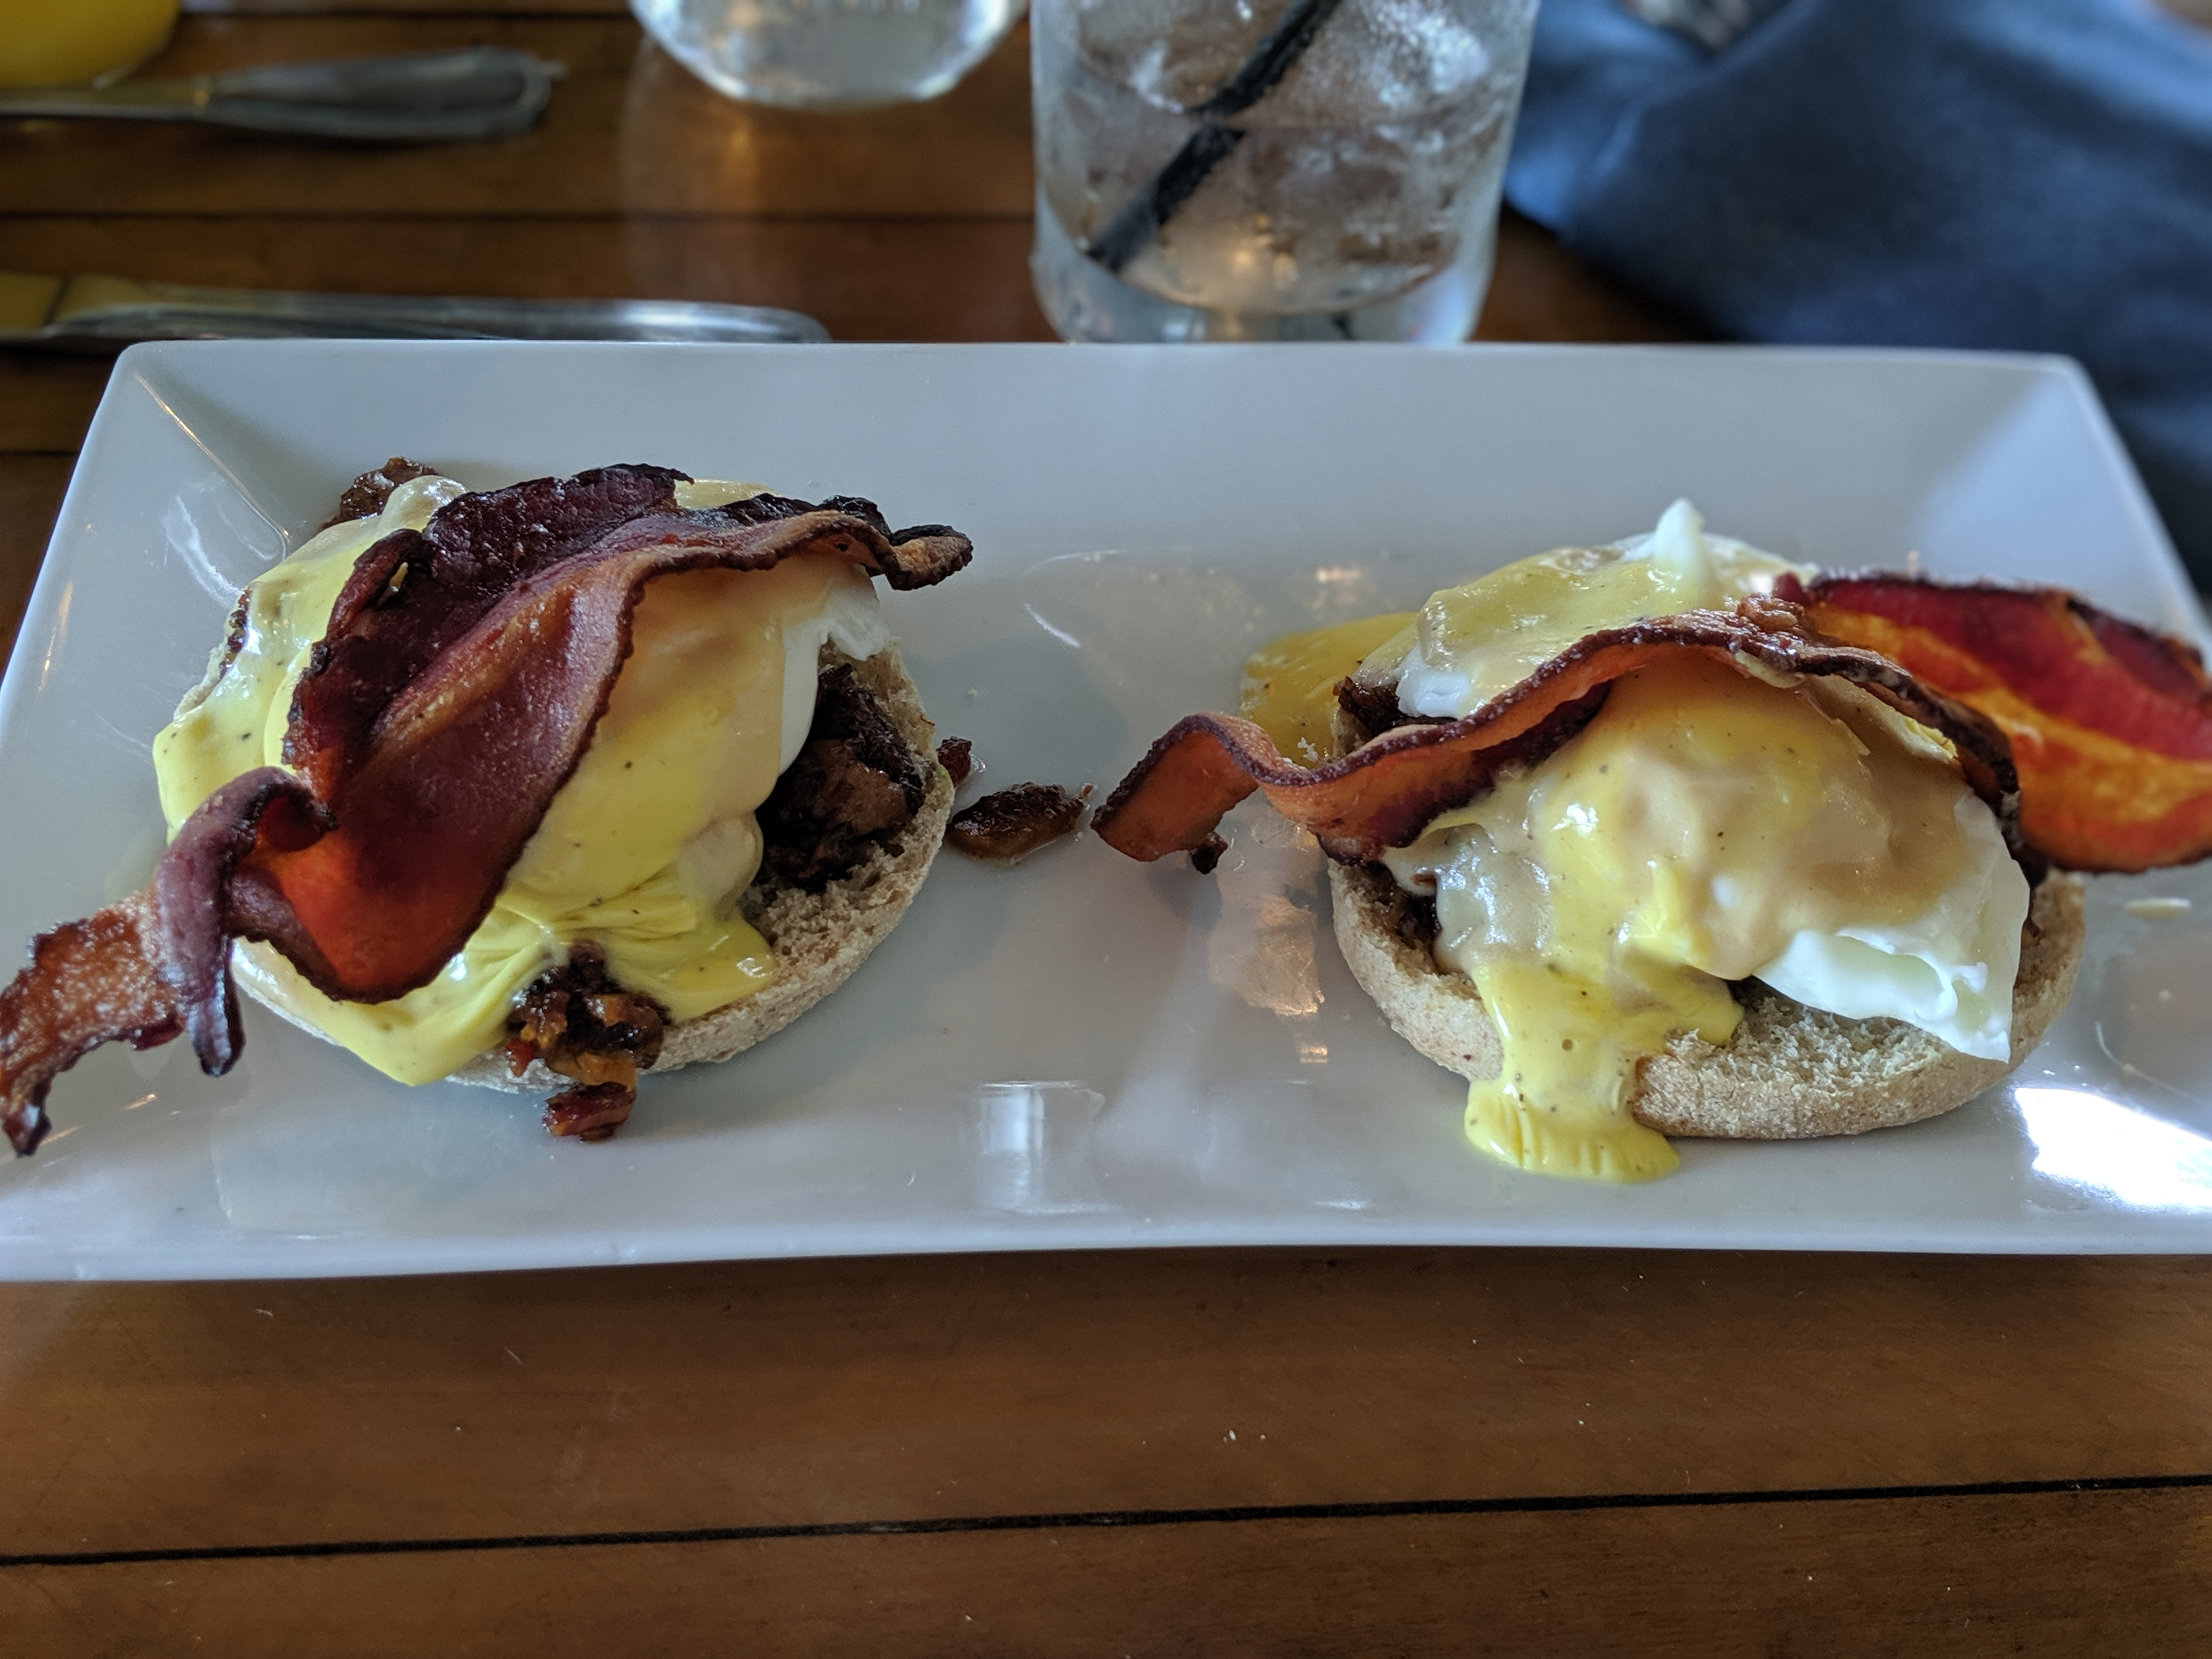 The town drunk eggs benny